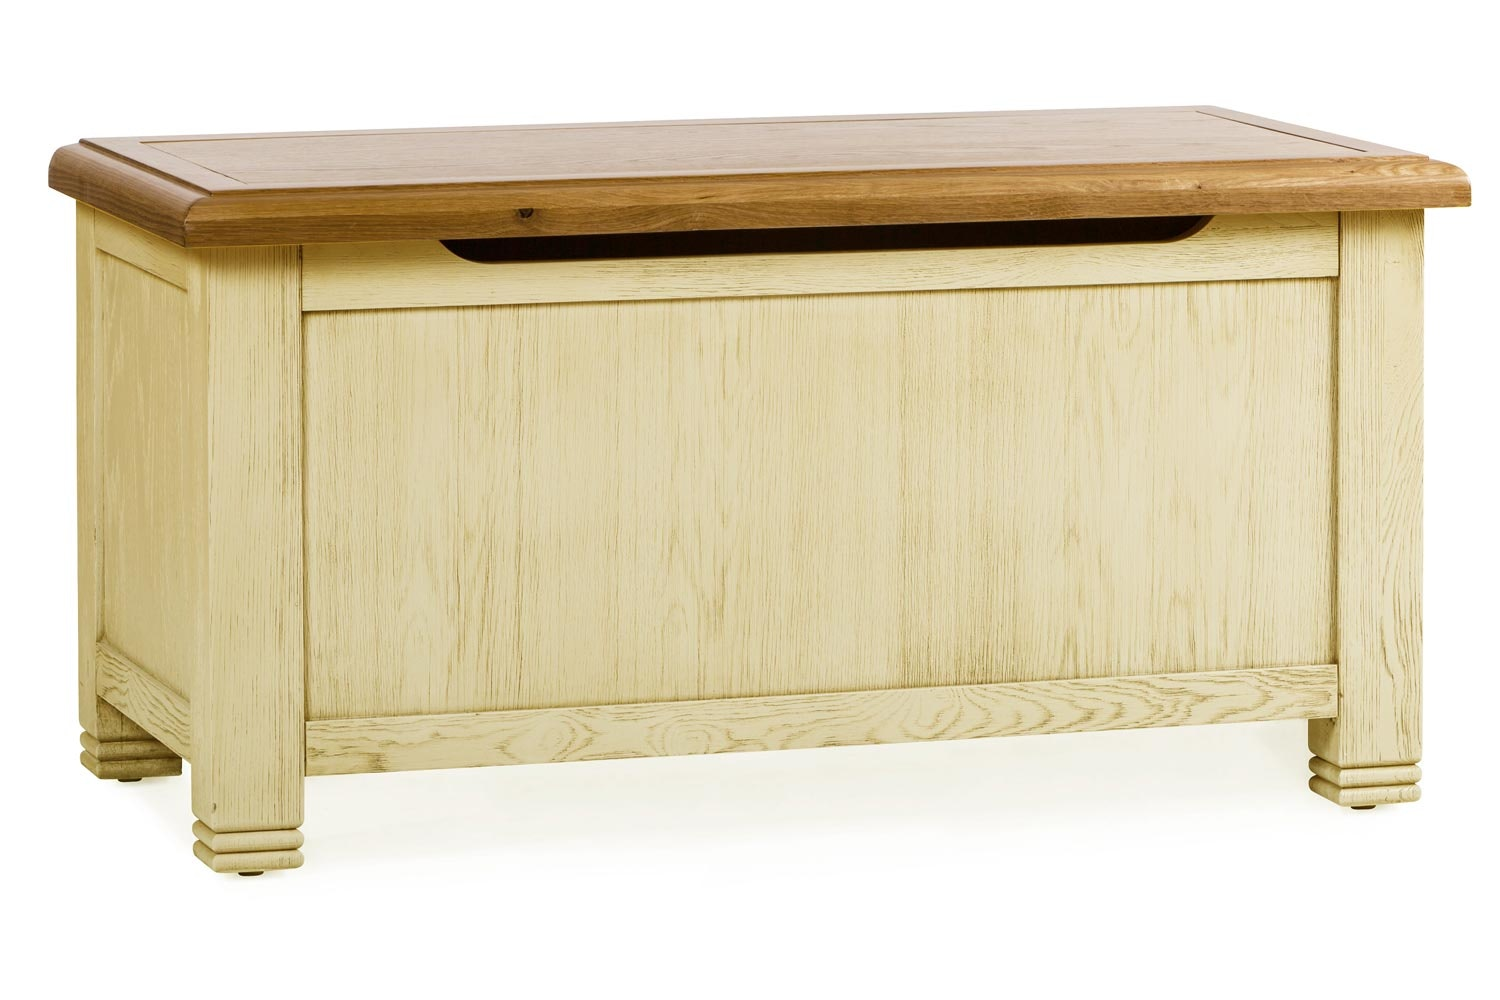 Lancaster Blanket Box | Aged Cream/Oak